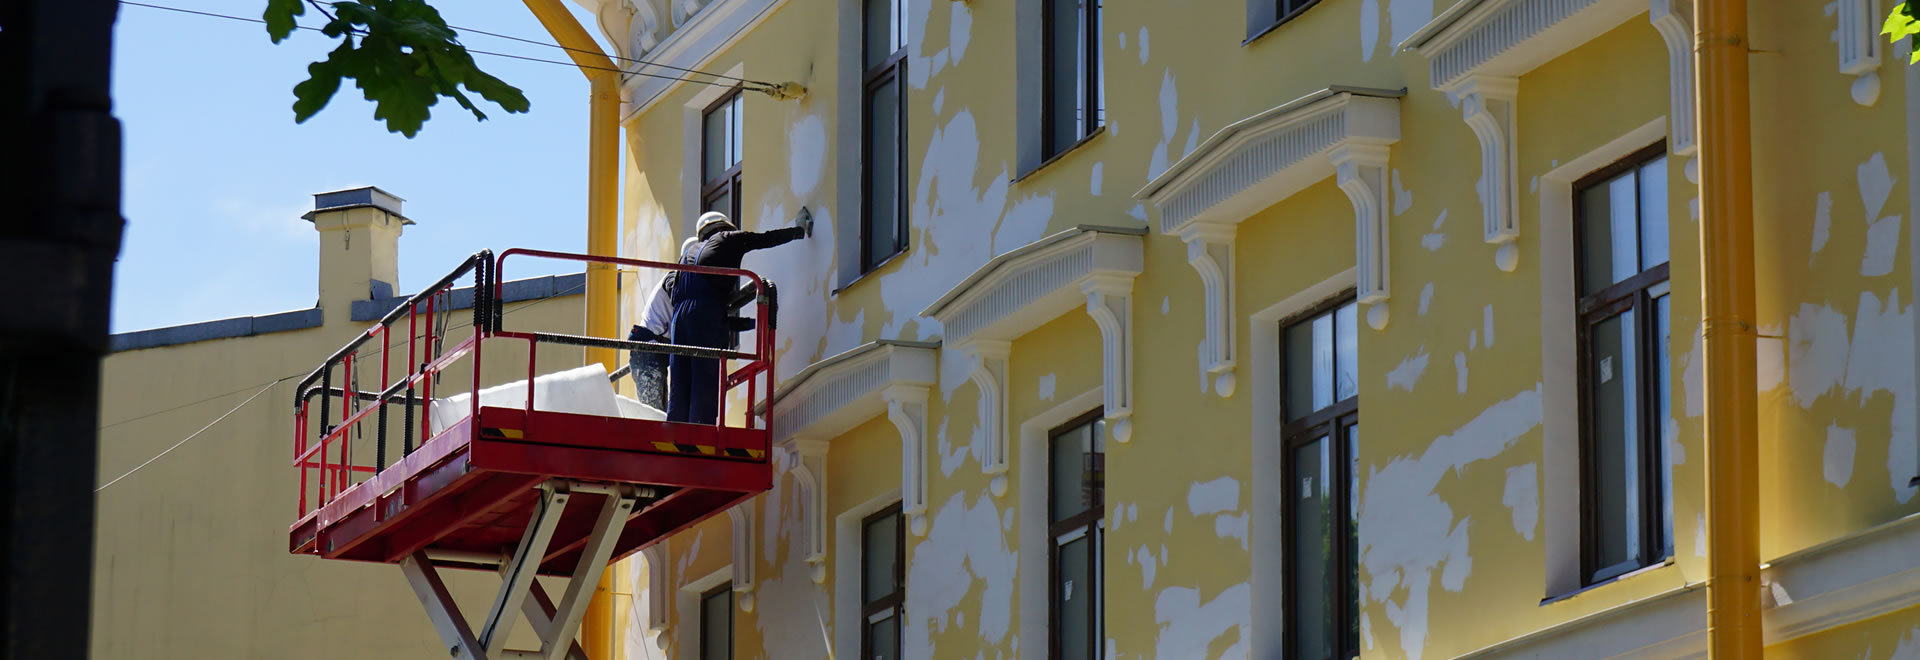 OHS compliant commercial painting company